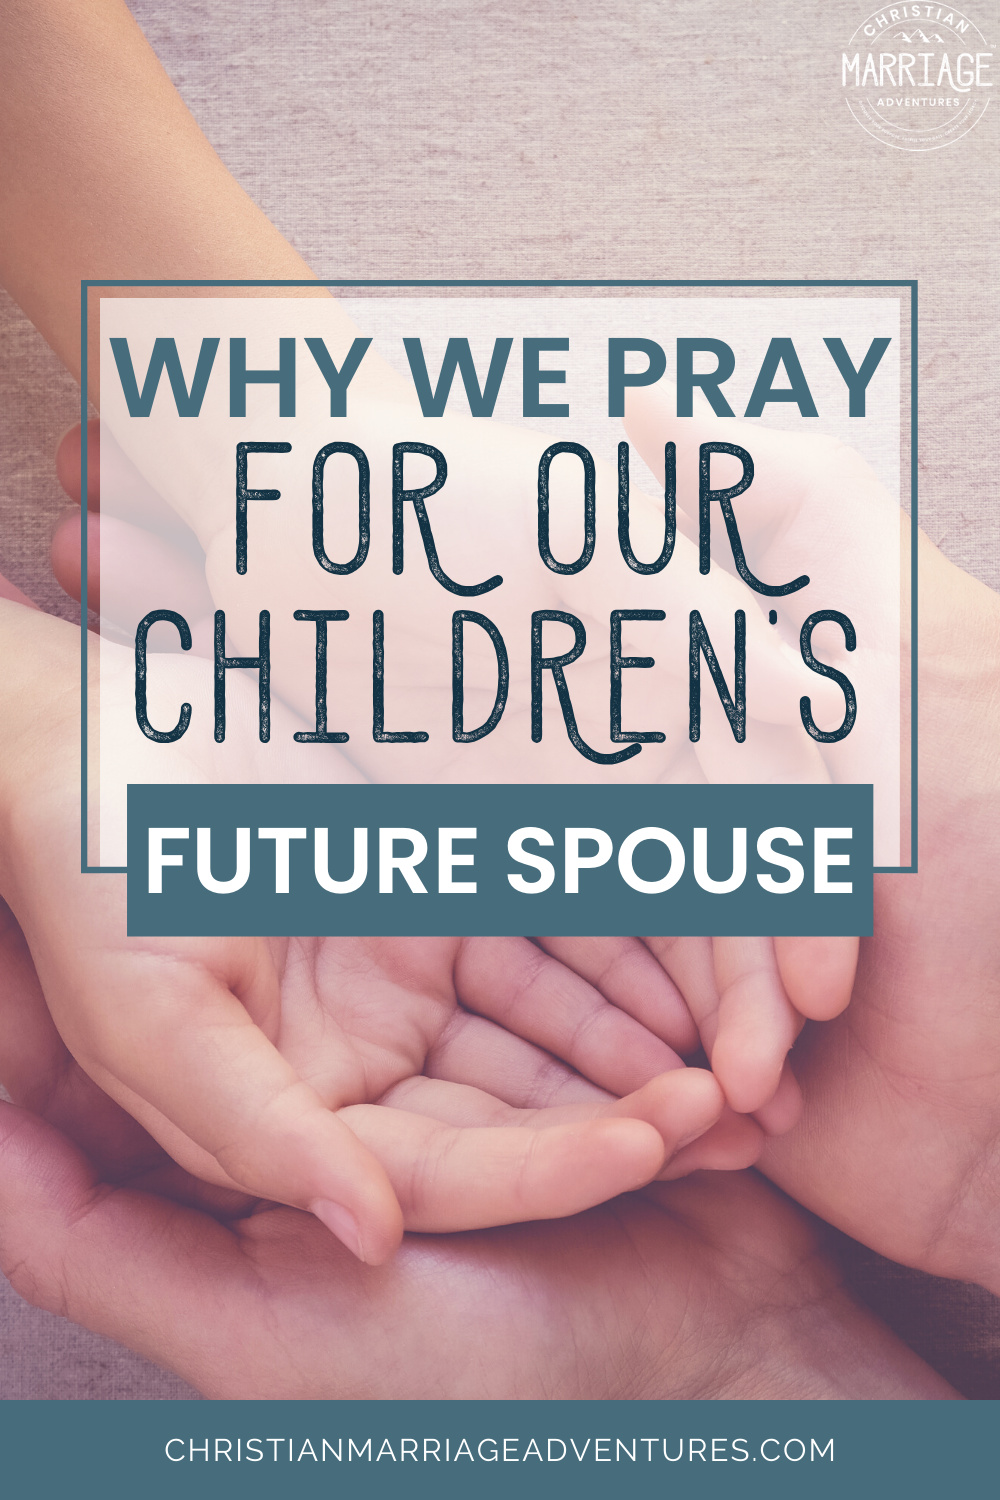 Do you pray for your children's future spouse? We do. Come see why you should be too!